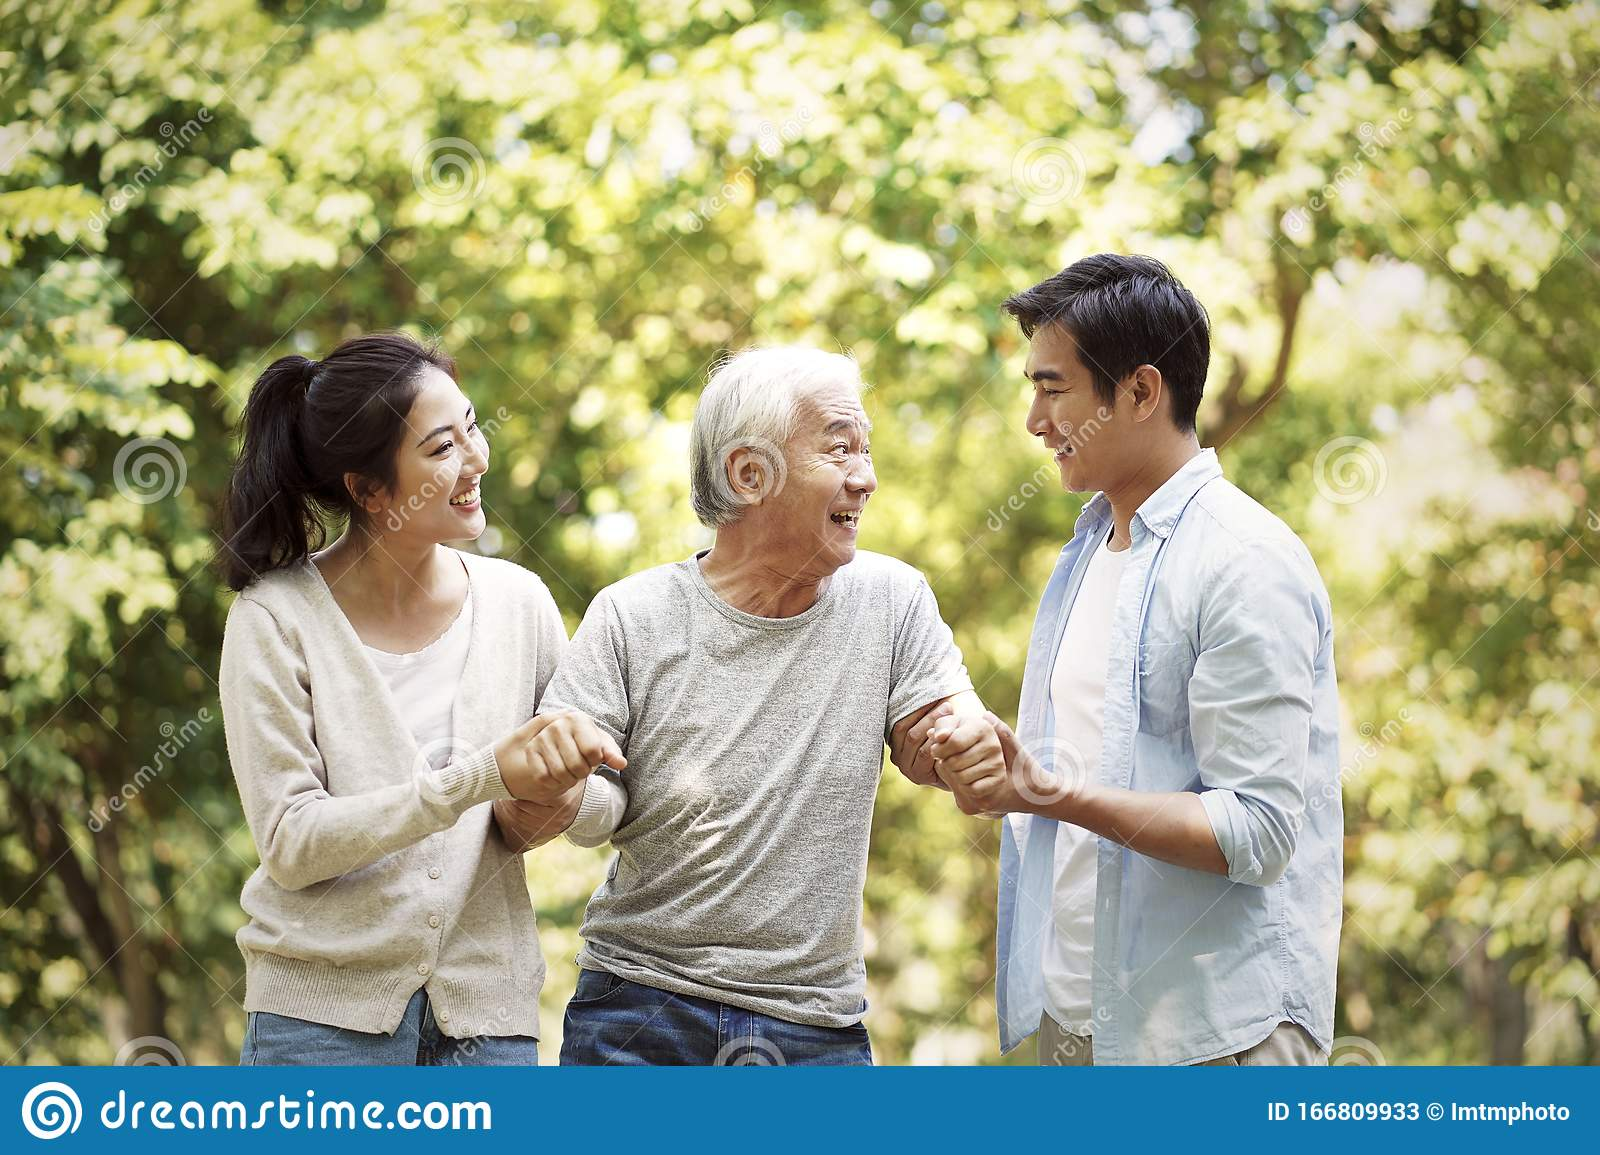 Young Asian Couple Helping Old Man Walk Stock Image